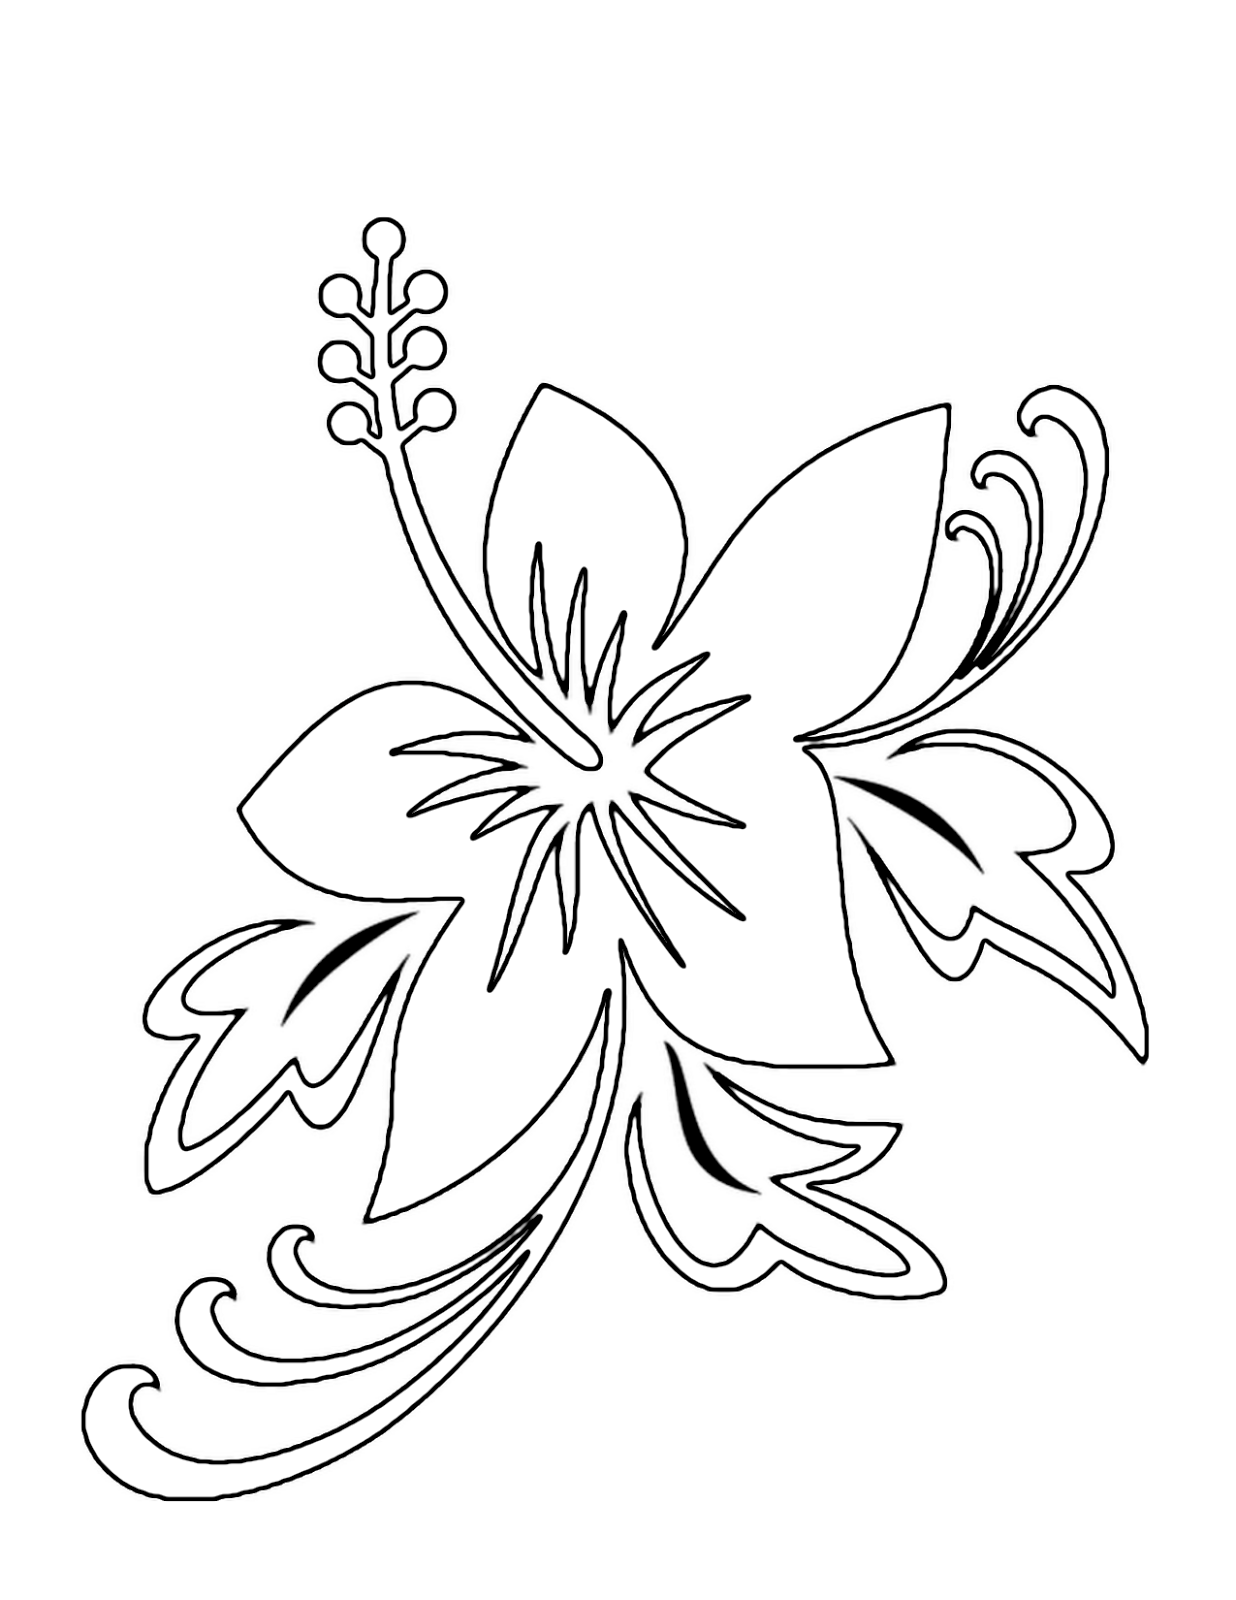 Adult Coloring Pages - cool printable coloring pages for adults